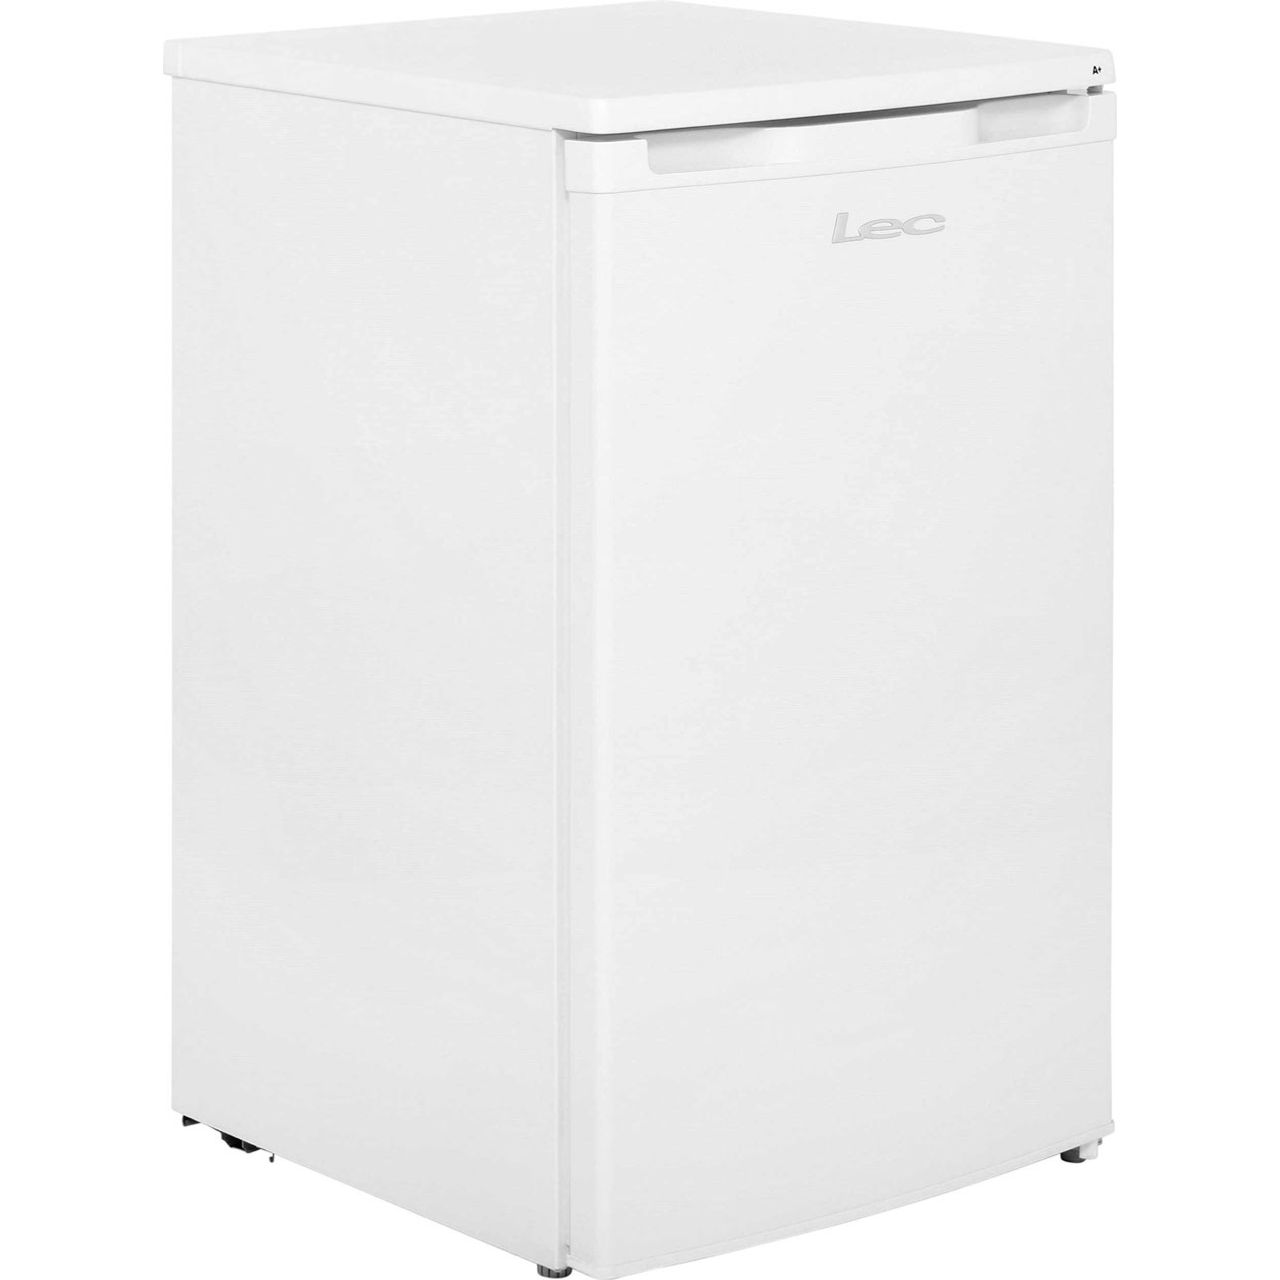 Lec R5010W Fridge with Ice Box - White